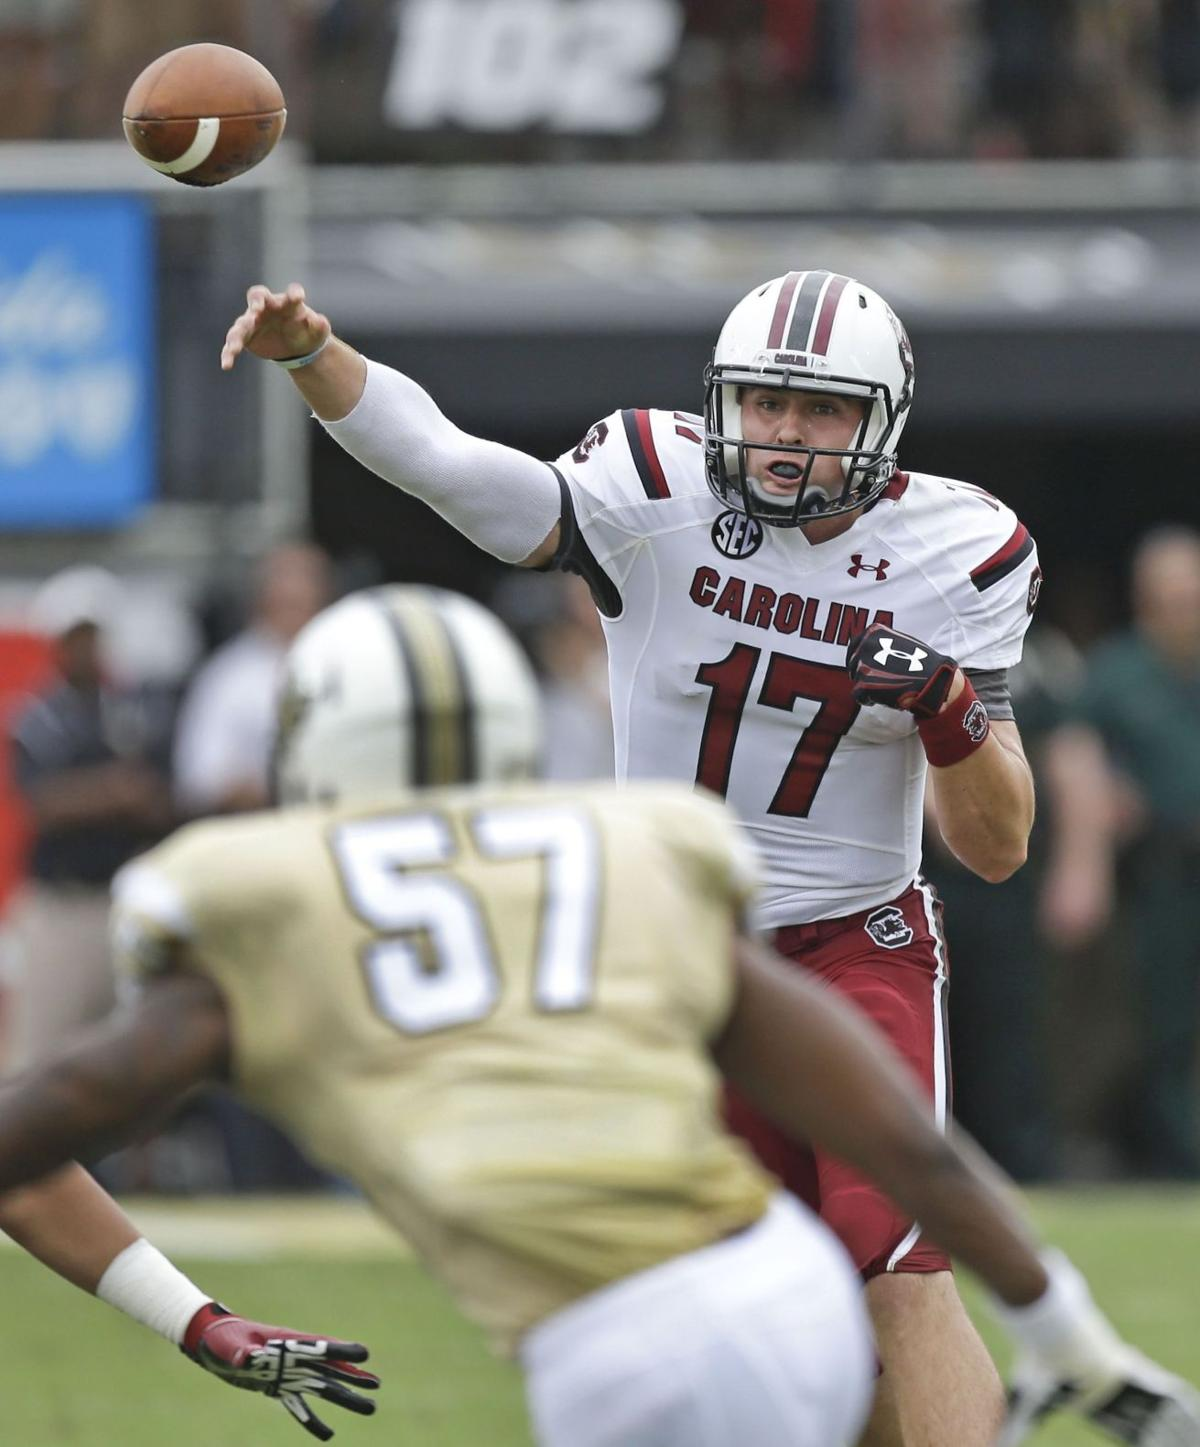 South Carolina's top 10 important players: No. 1, Dylan Thompson